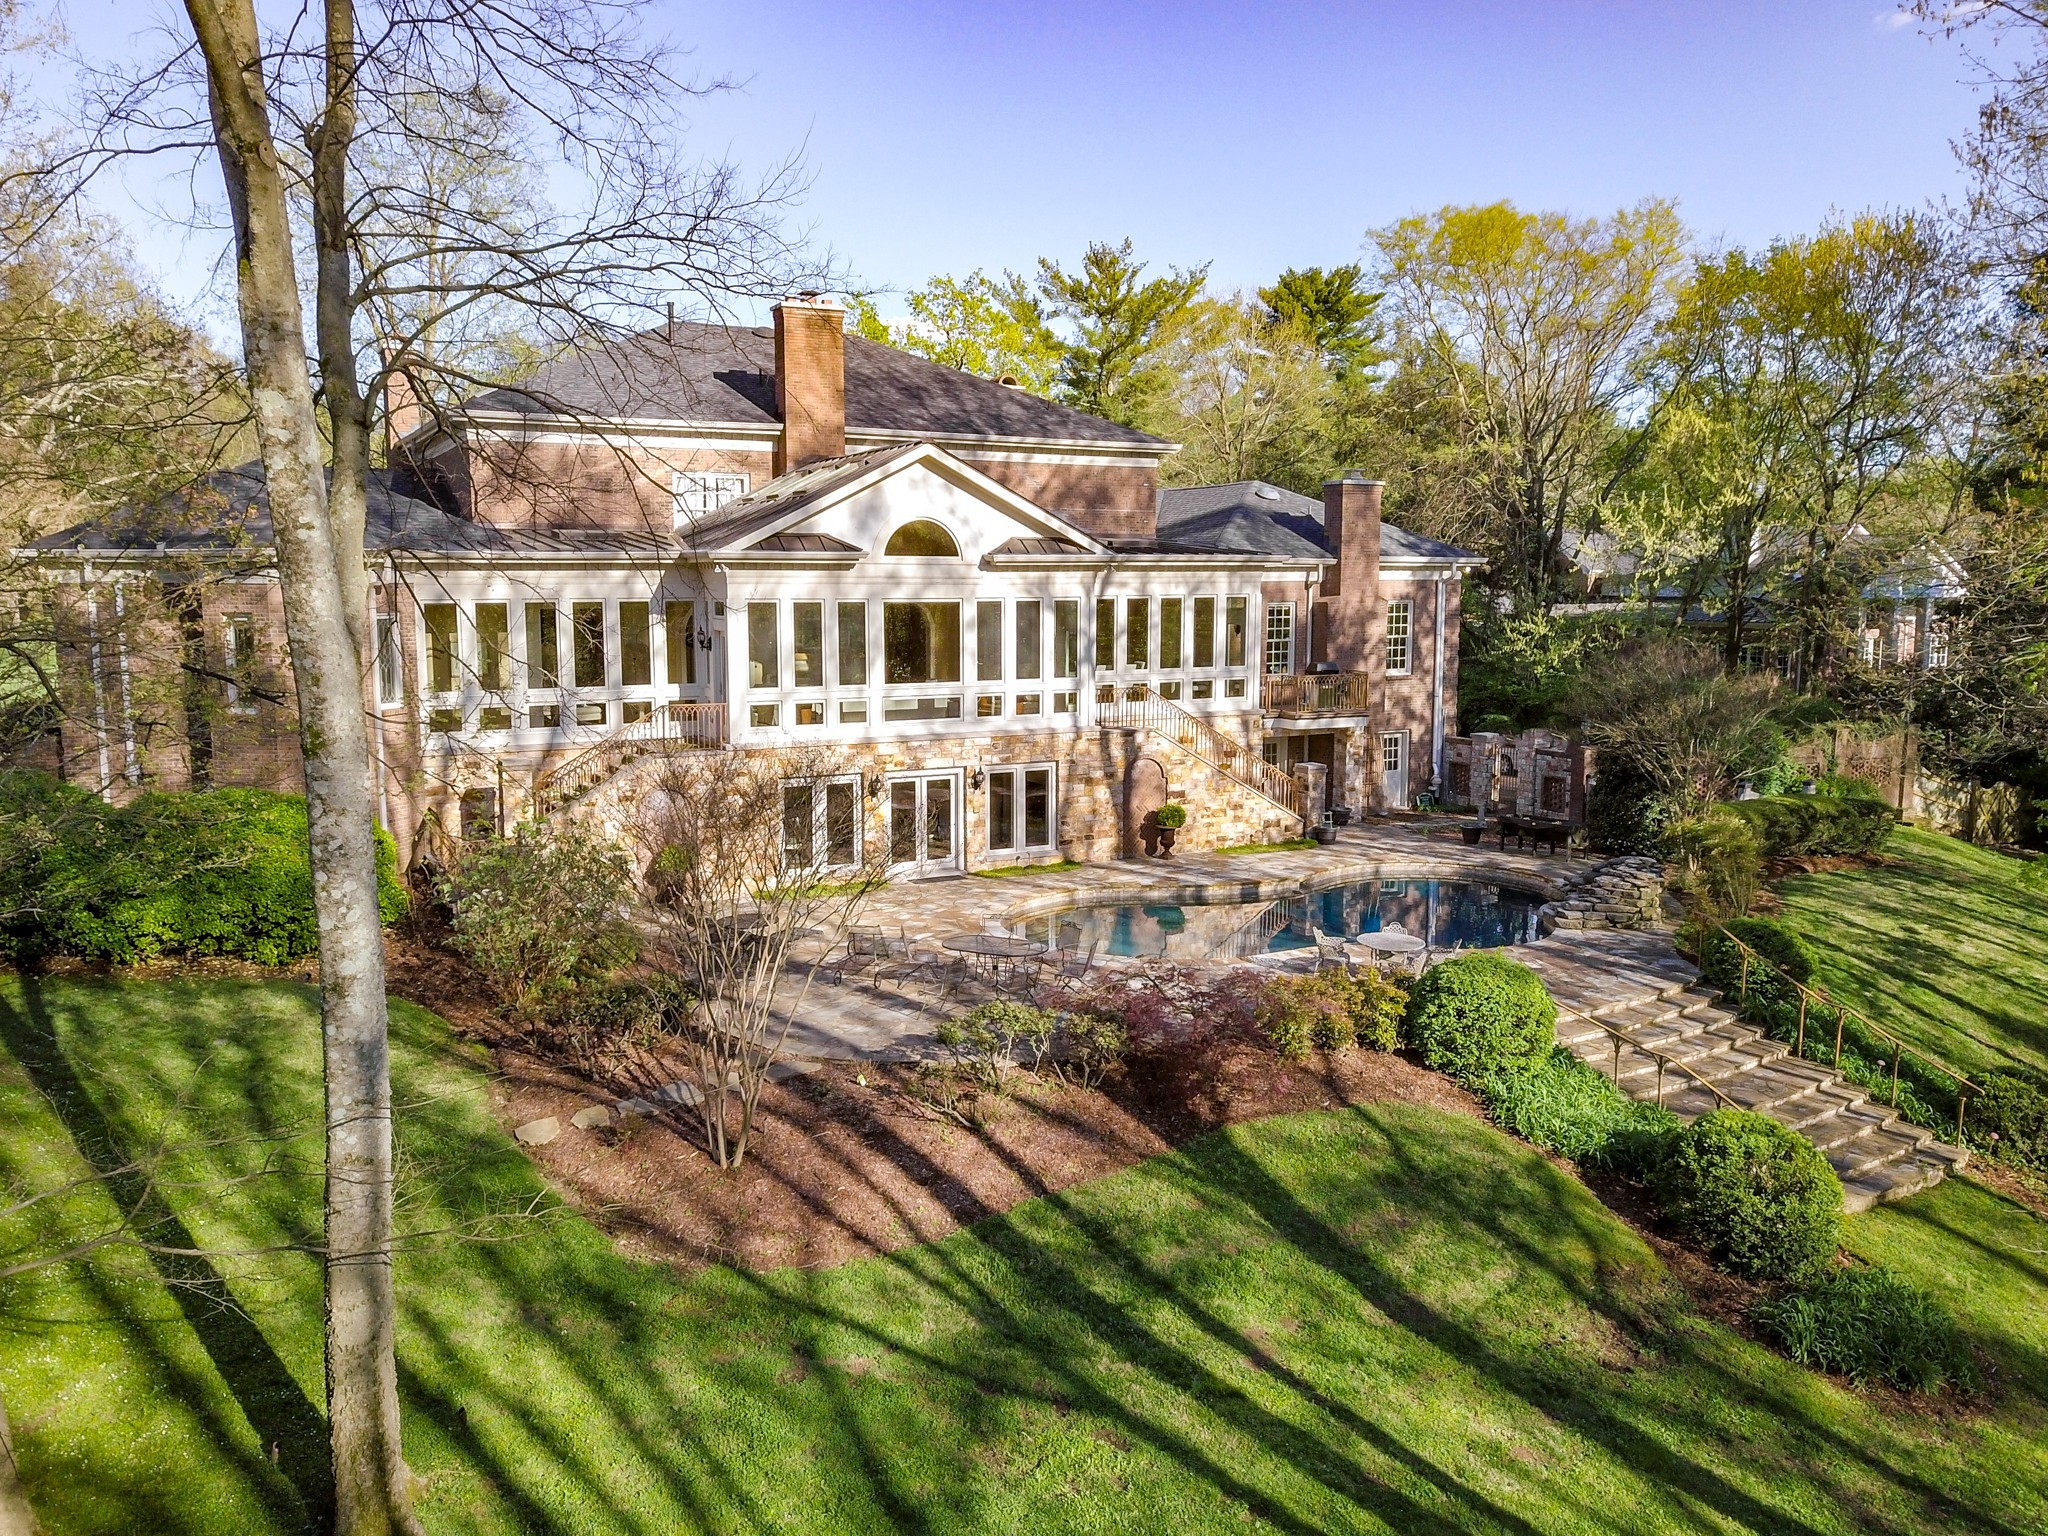 Incredible 2.6 acres in prime Belle Meade (2 parcels). Traditional brick residence, best described as Southern Colonial. One owner. Extensive expansion in 2006-2007. Walls of glass & soaring ceilings add volumes of space while flooding rooms with light. Pool and terrace. Almost 10,000 sq.ft. Easy to personalize kitchen and baths within existing spaces. Wooded with trails in back for privacy, or clear for soccer field. Genrator!